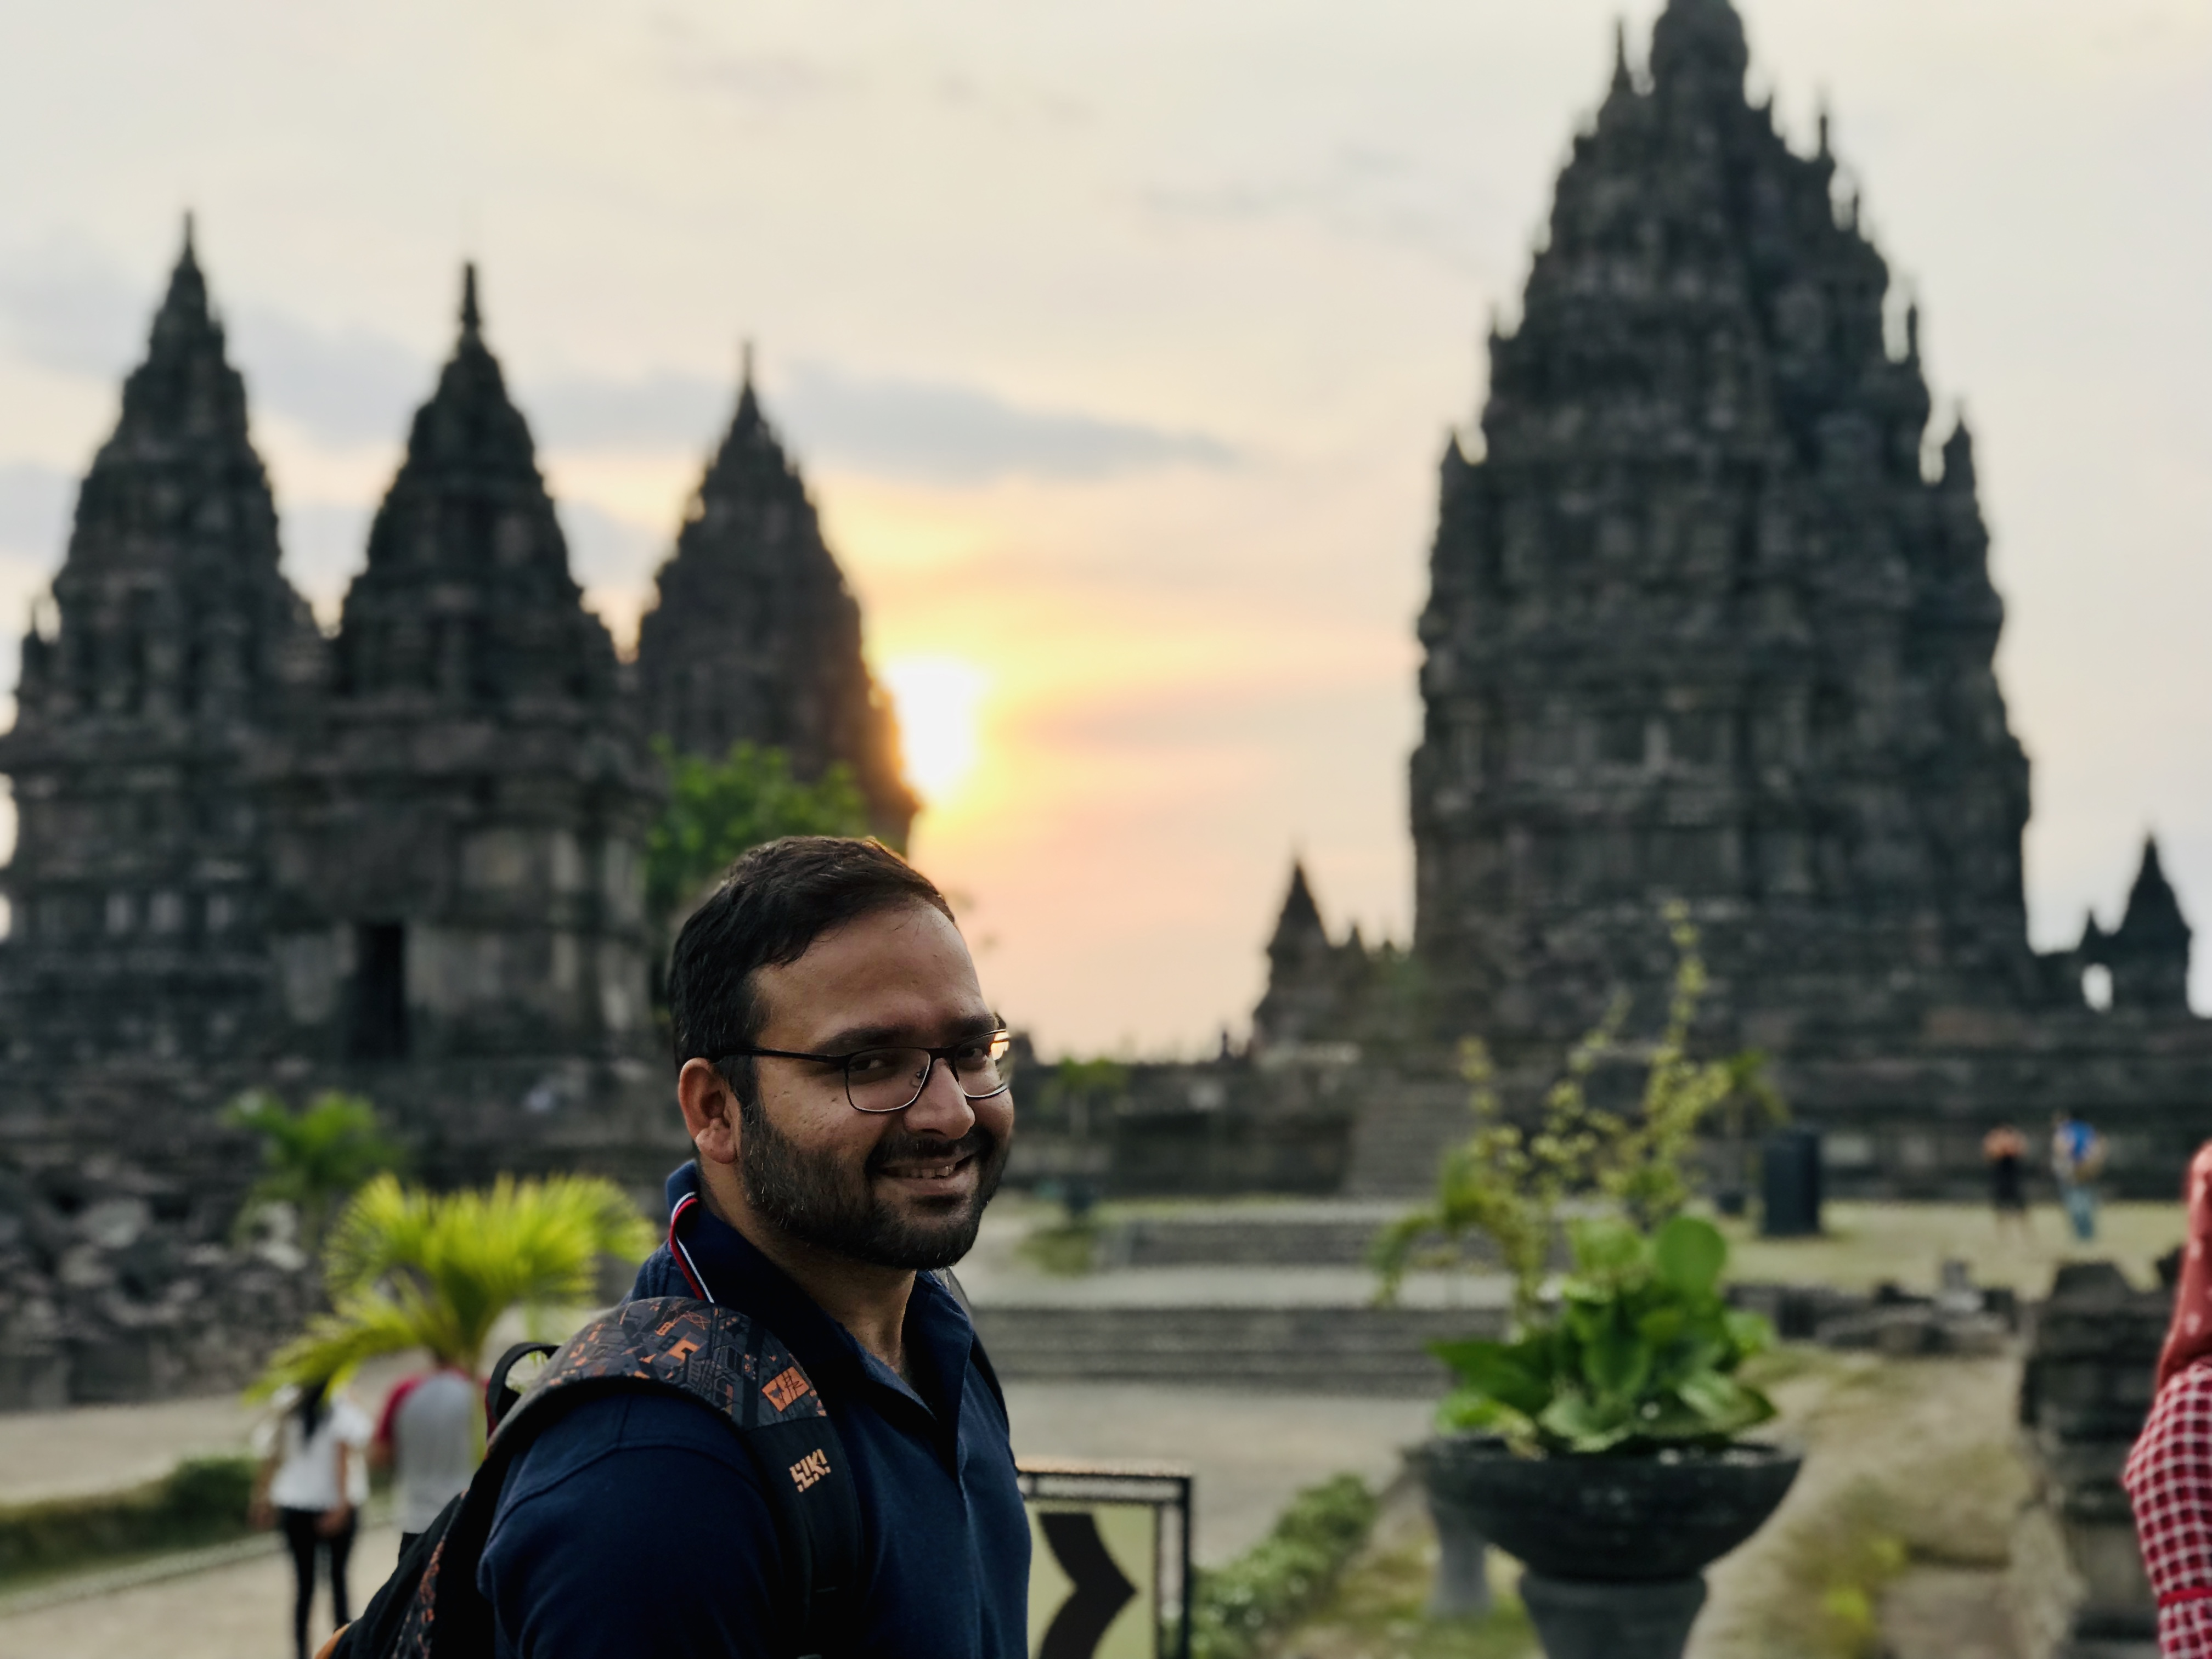 The sunset view at Prambanan at Yogyakarta